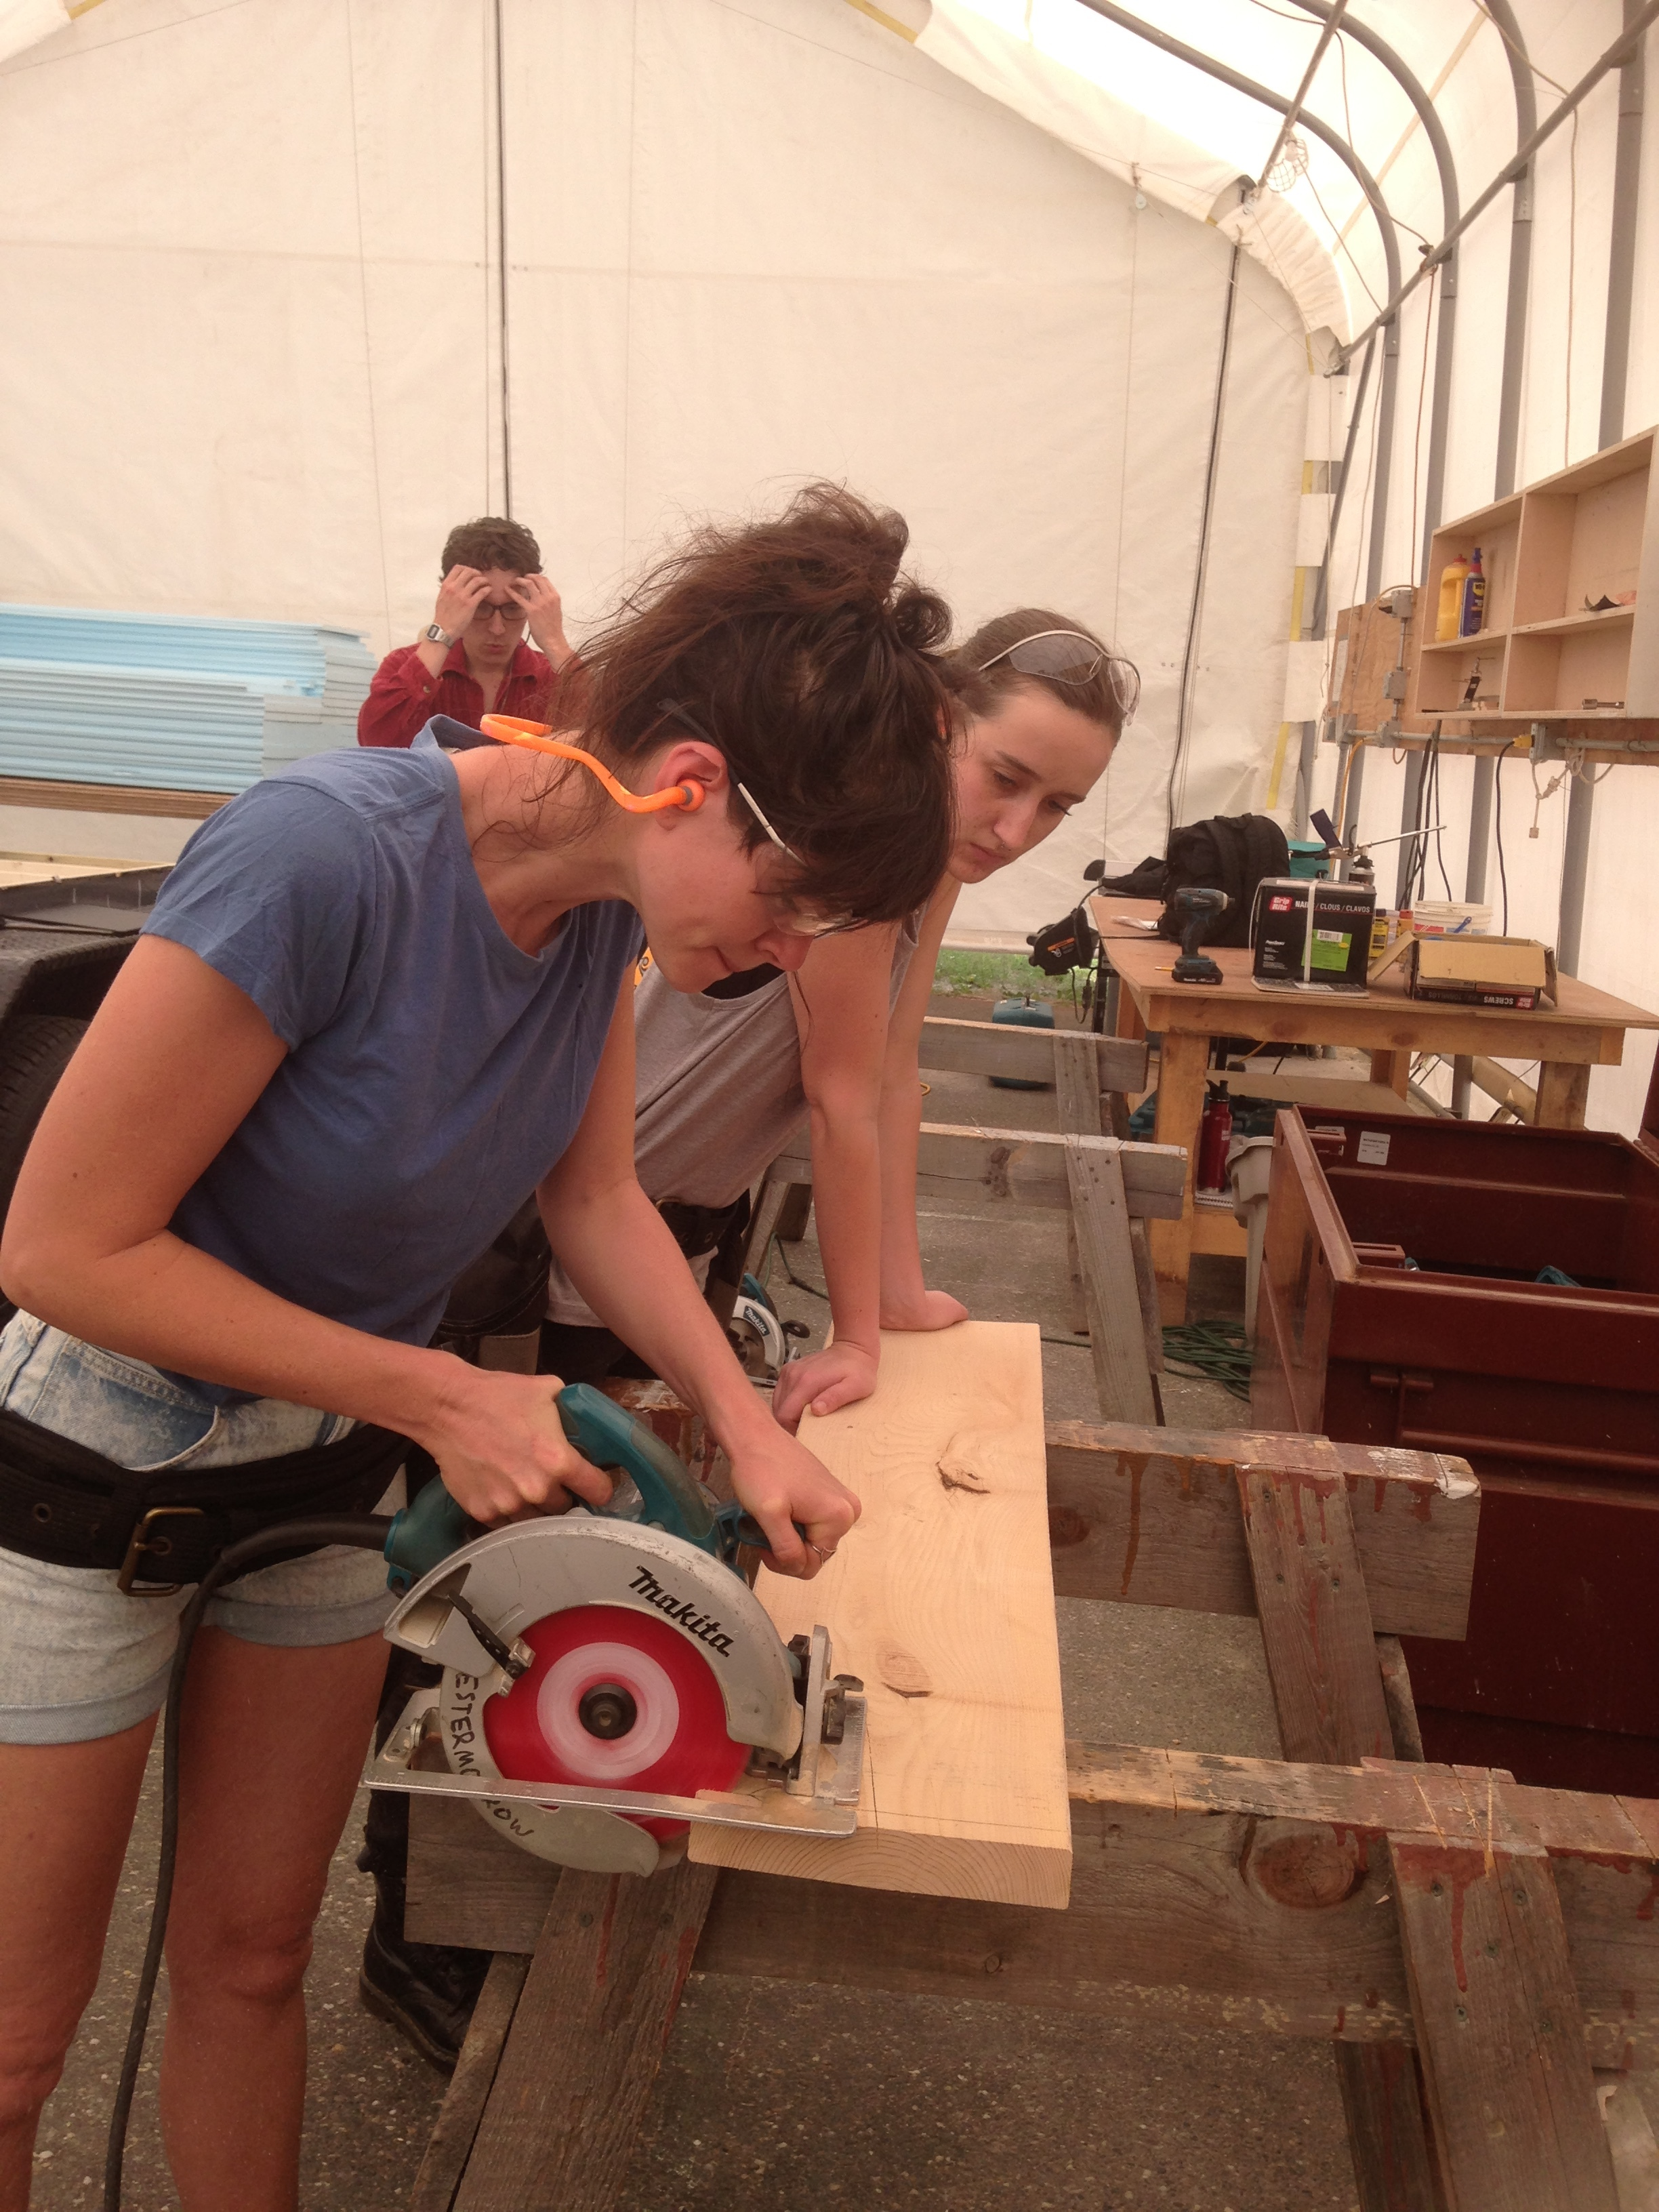 Lauren practices cutting with the circular saw while Tori looks on (and holds the board steady!)